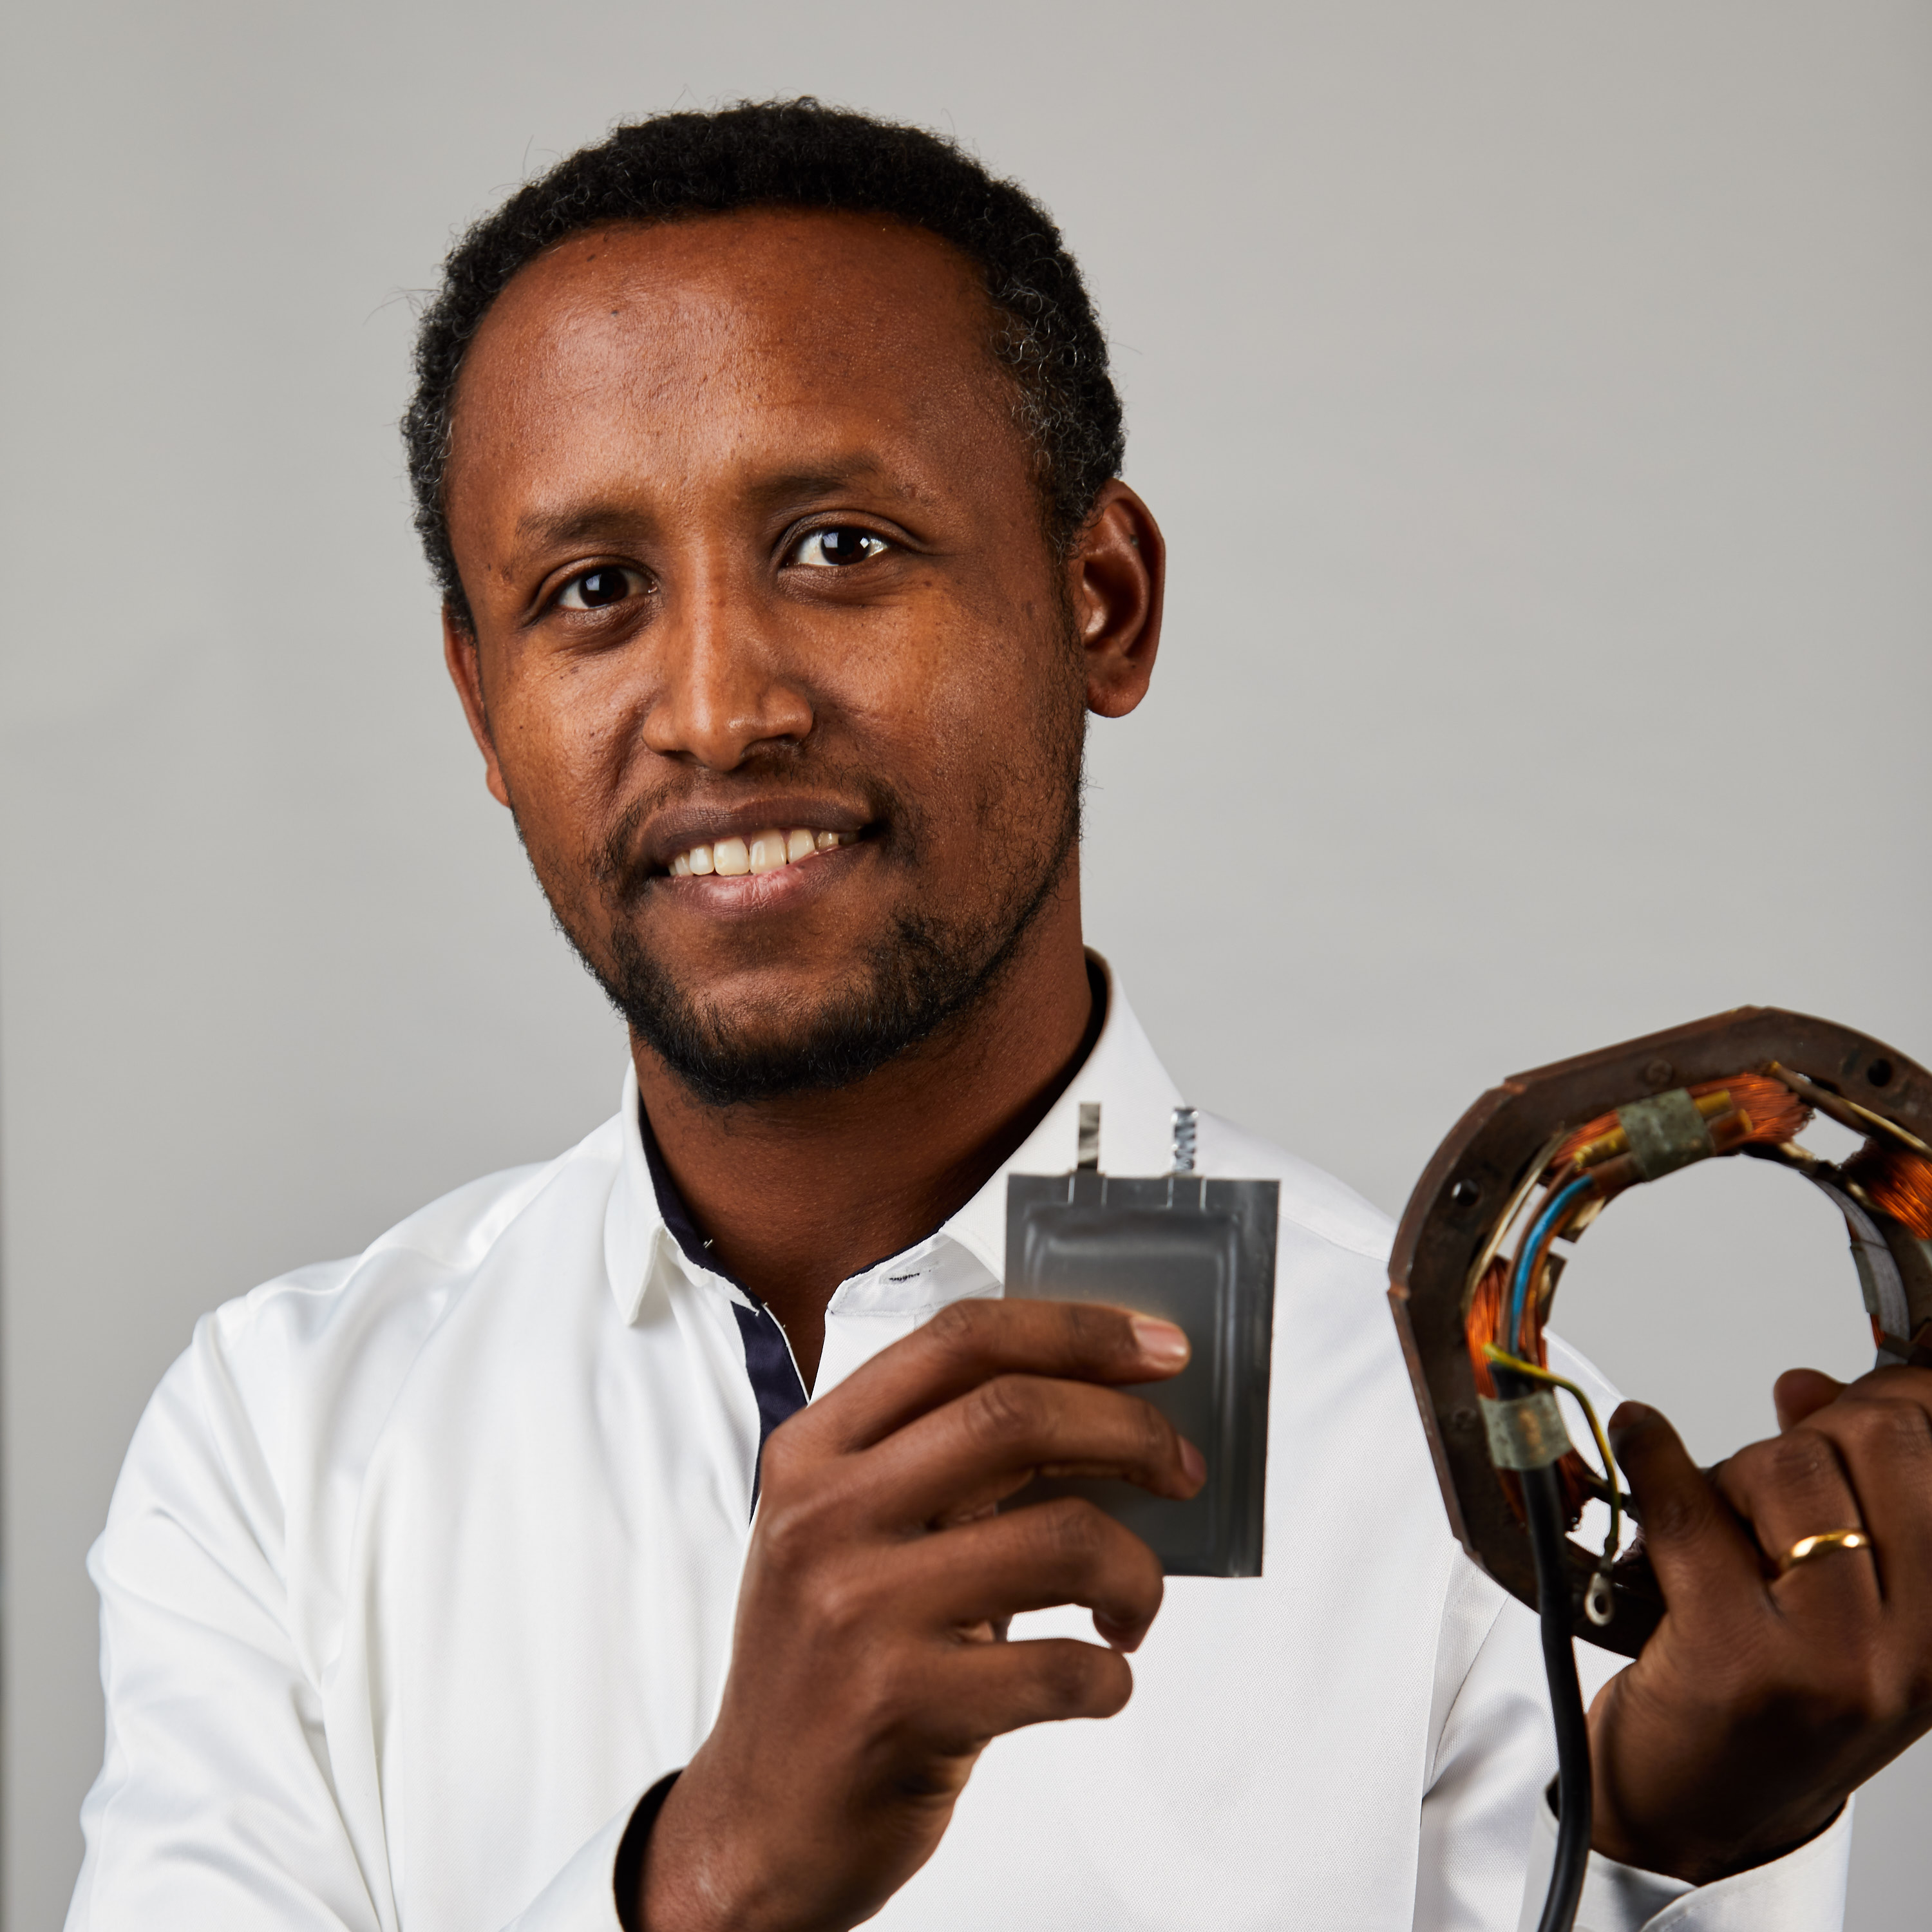 picture of abraham alem kebede - researcher at mobi